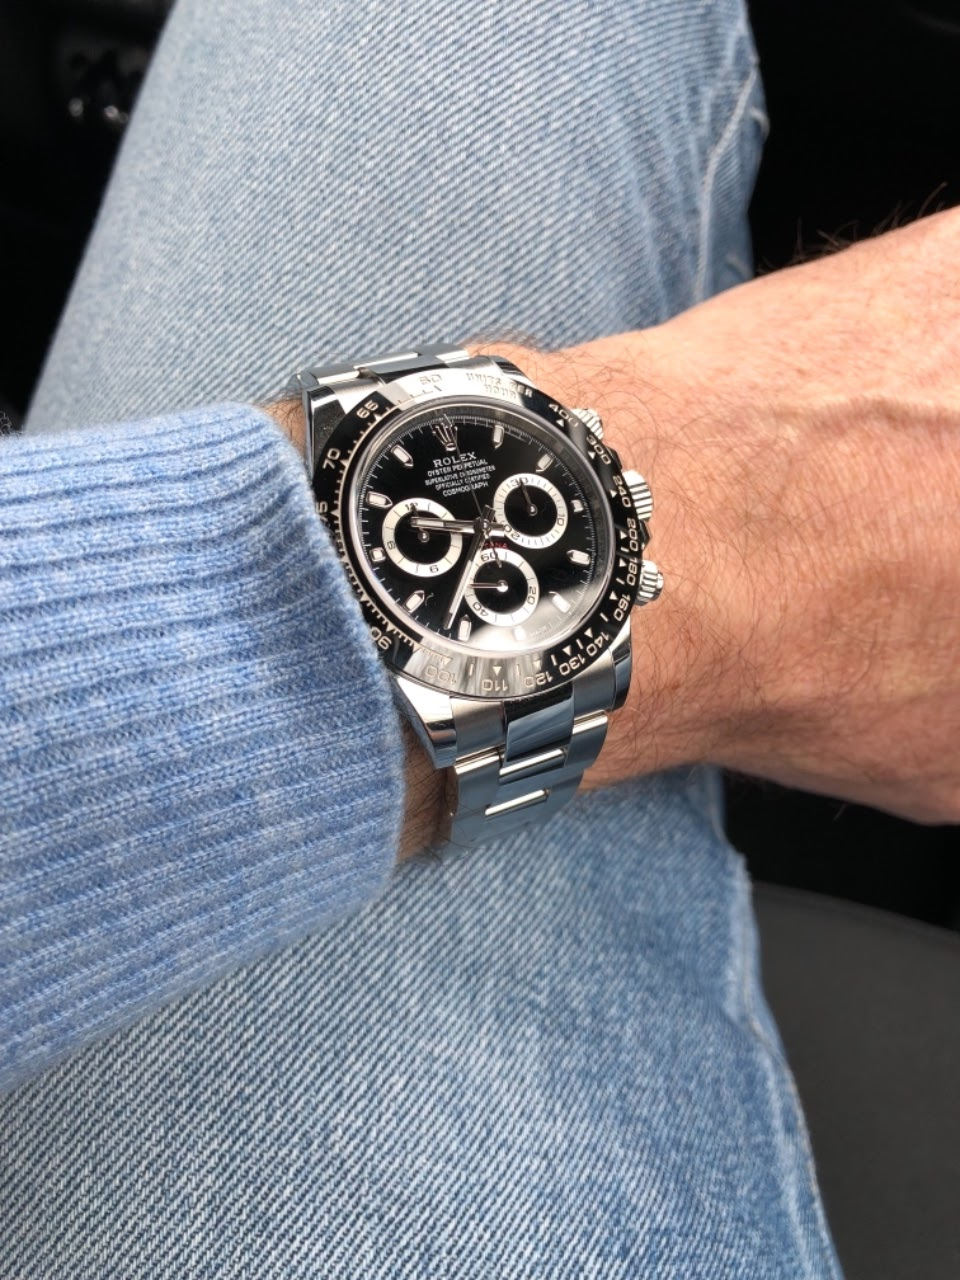 Rolex , Back on my wrist after more than 6 months.